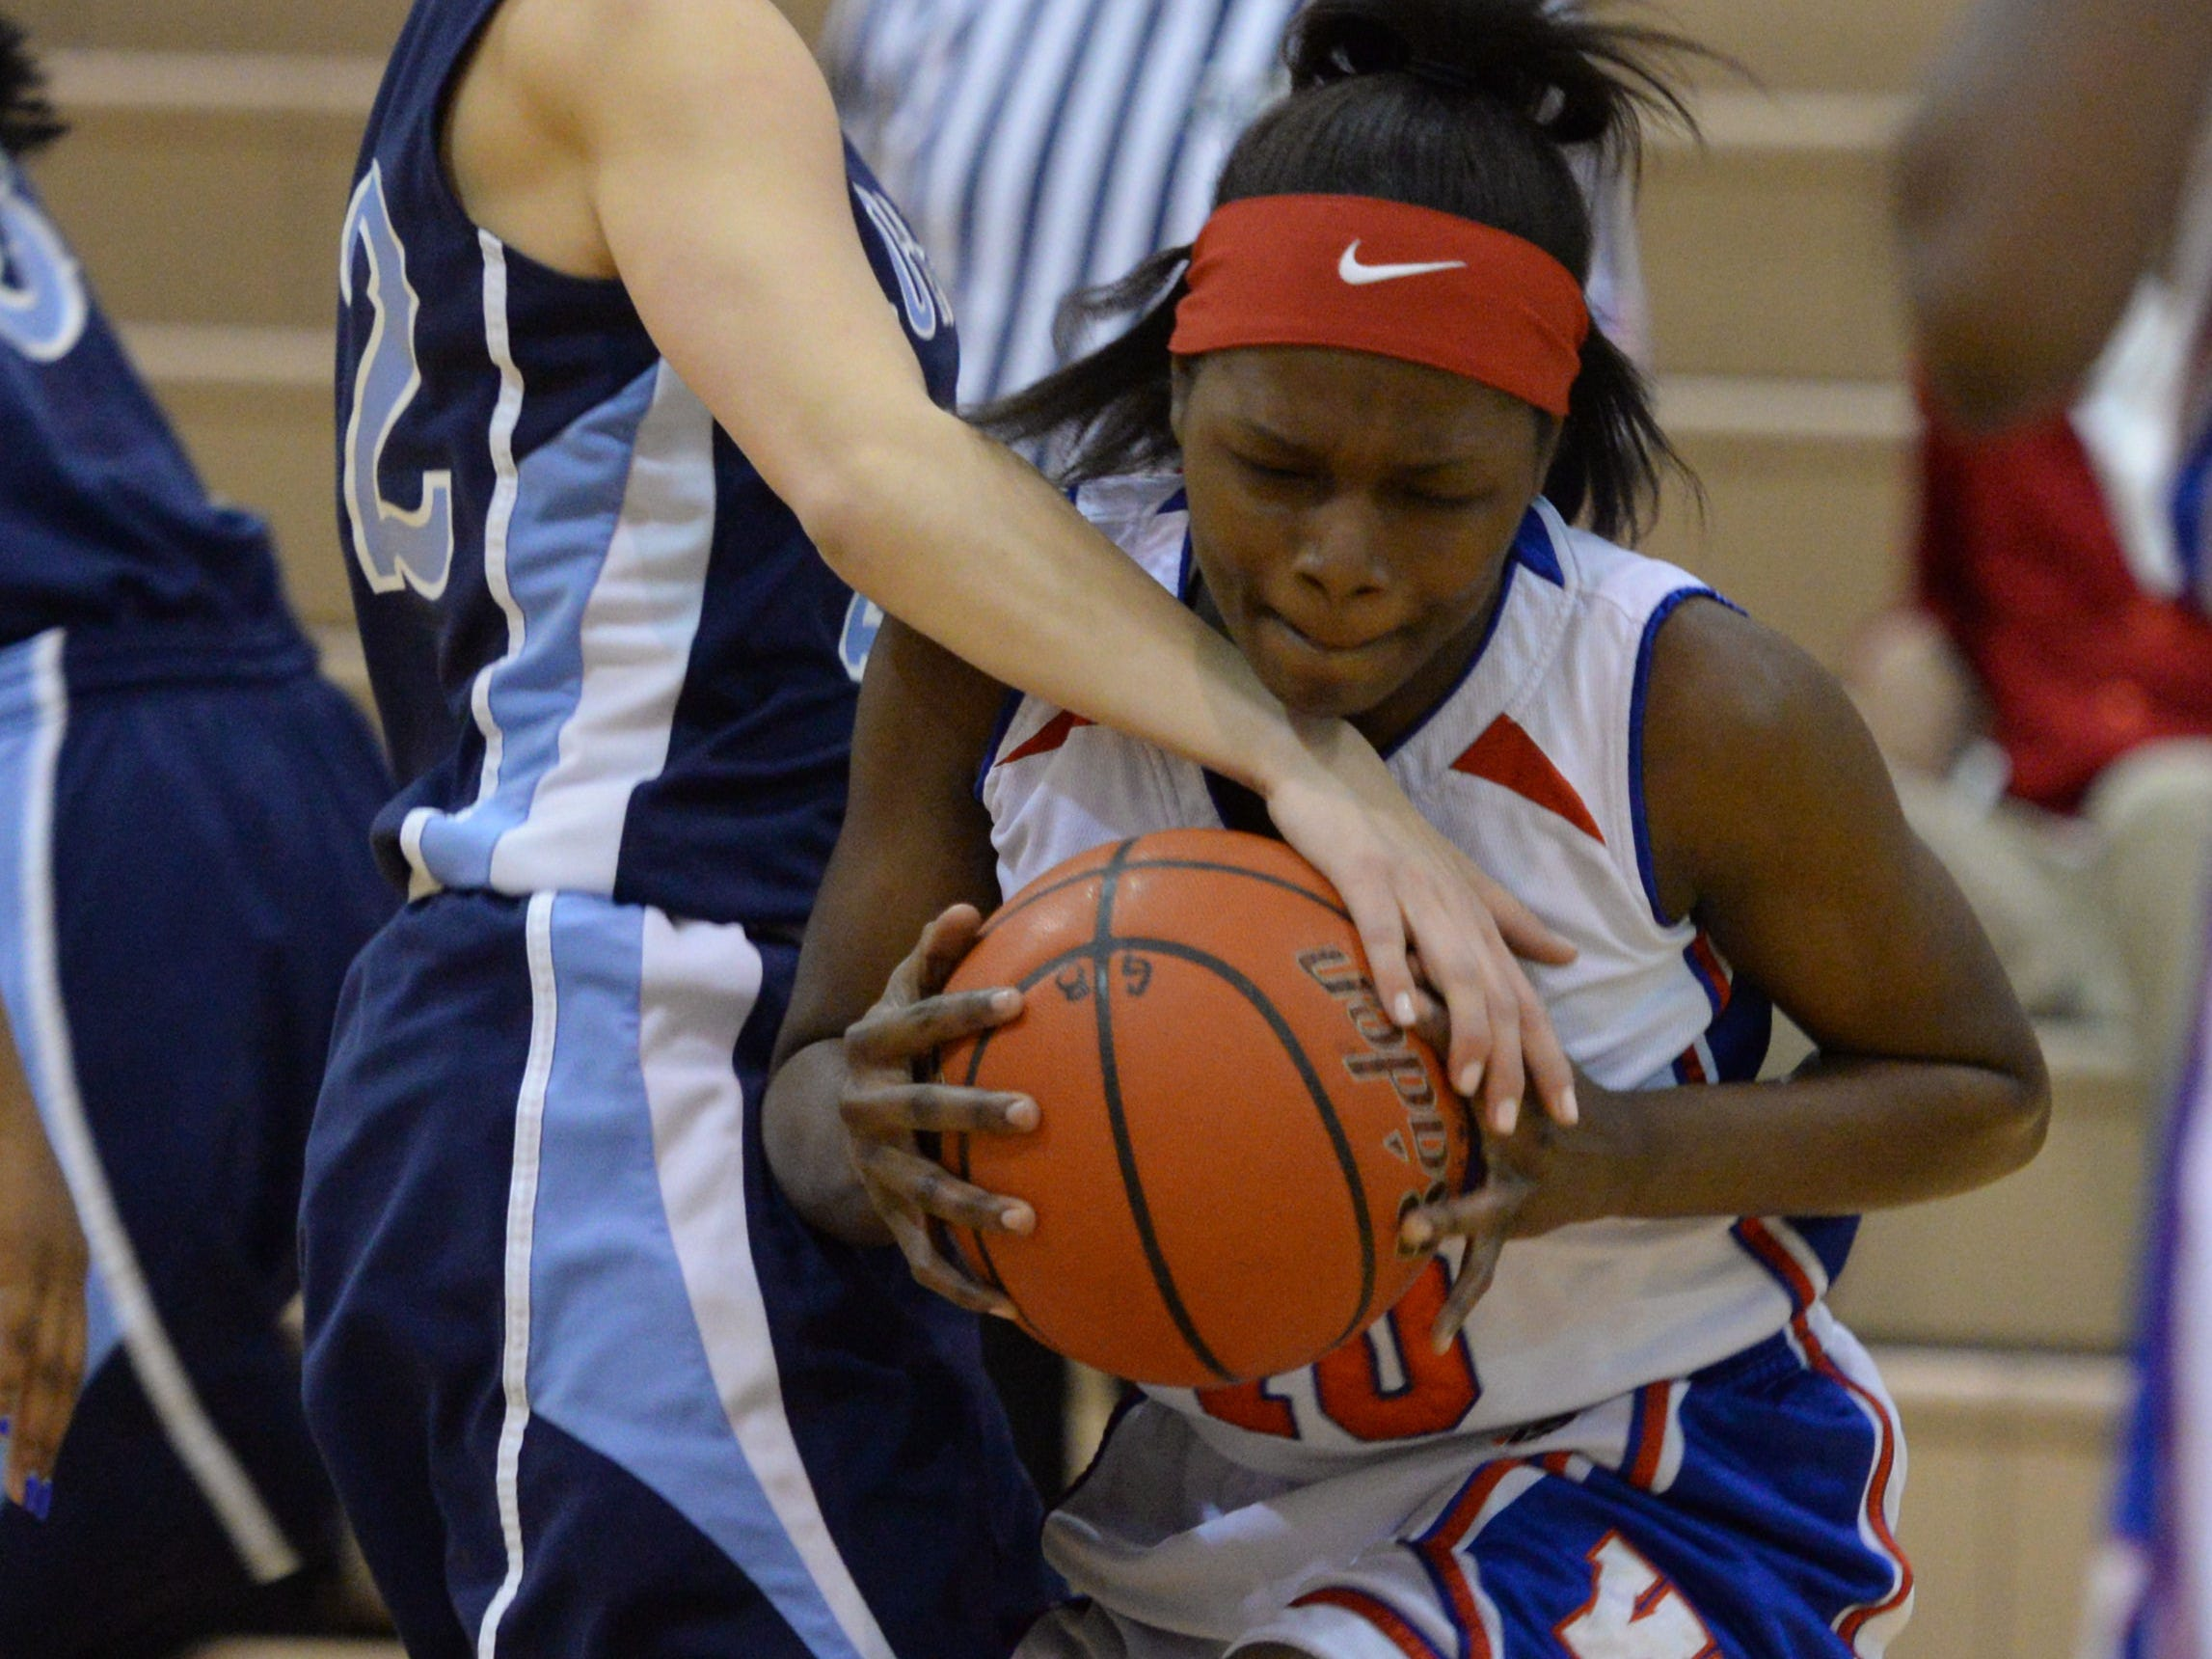 Woodlawn's Aliyah Carter pulls in a rebound past Loyola's Sydney Mouser.